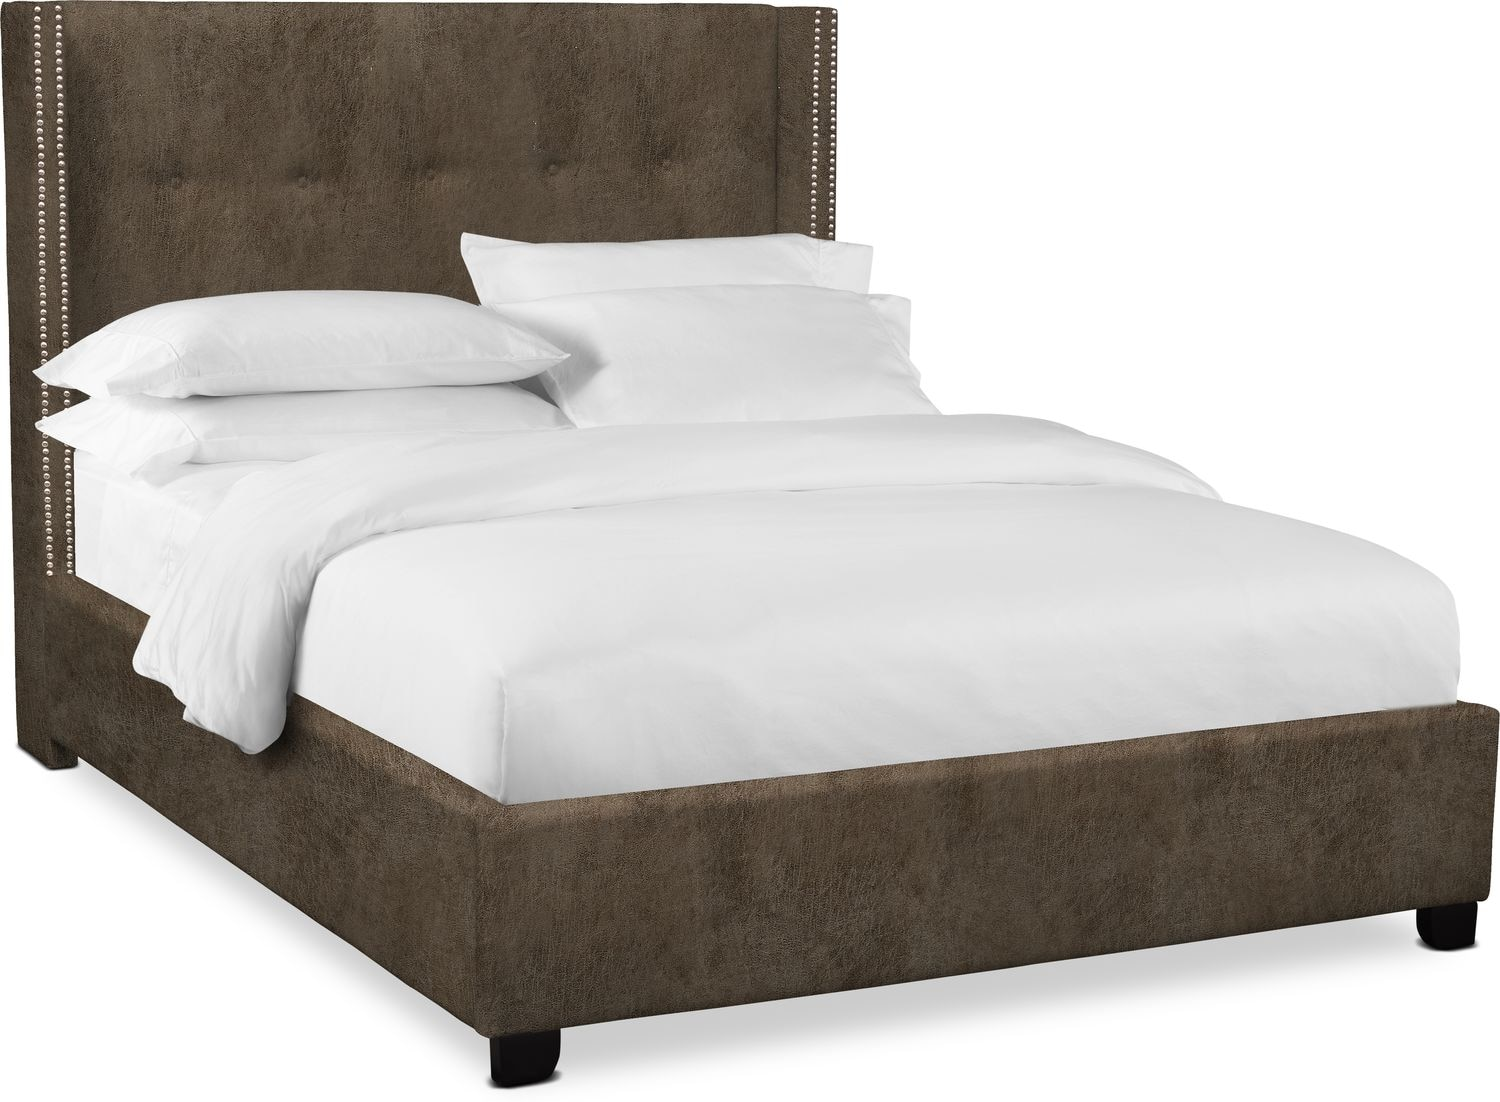 "Bedroom Furniture - Carter 56"" Upholstered Shelter Bed"